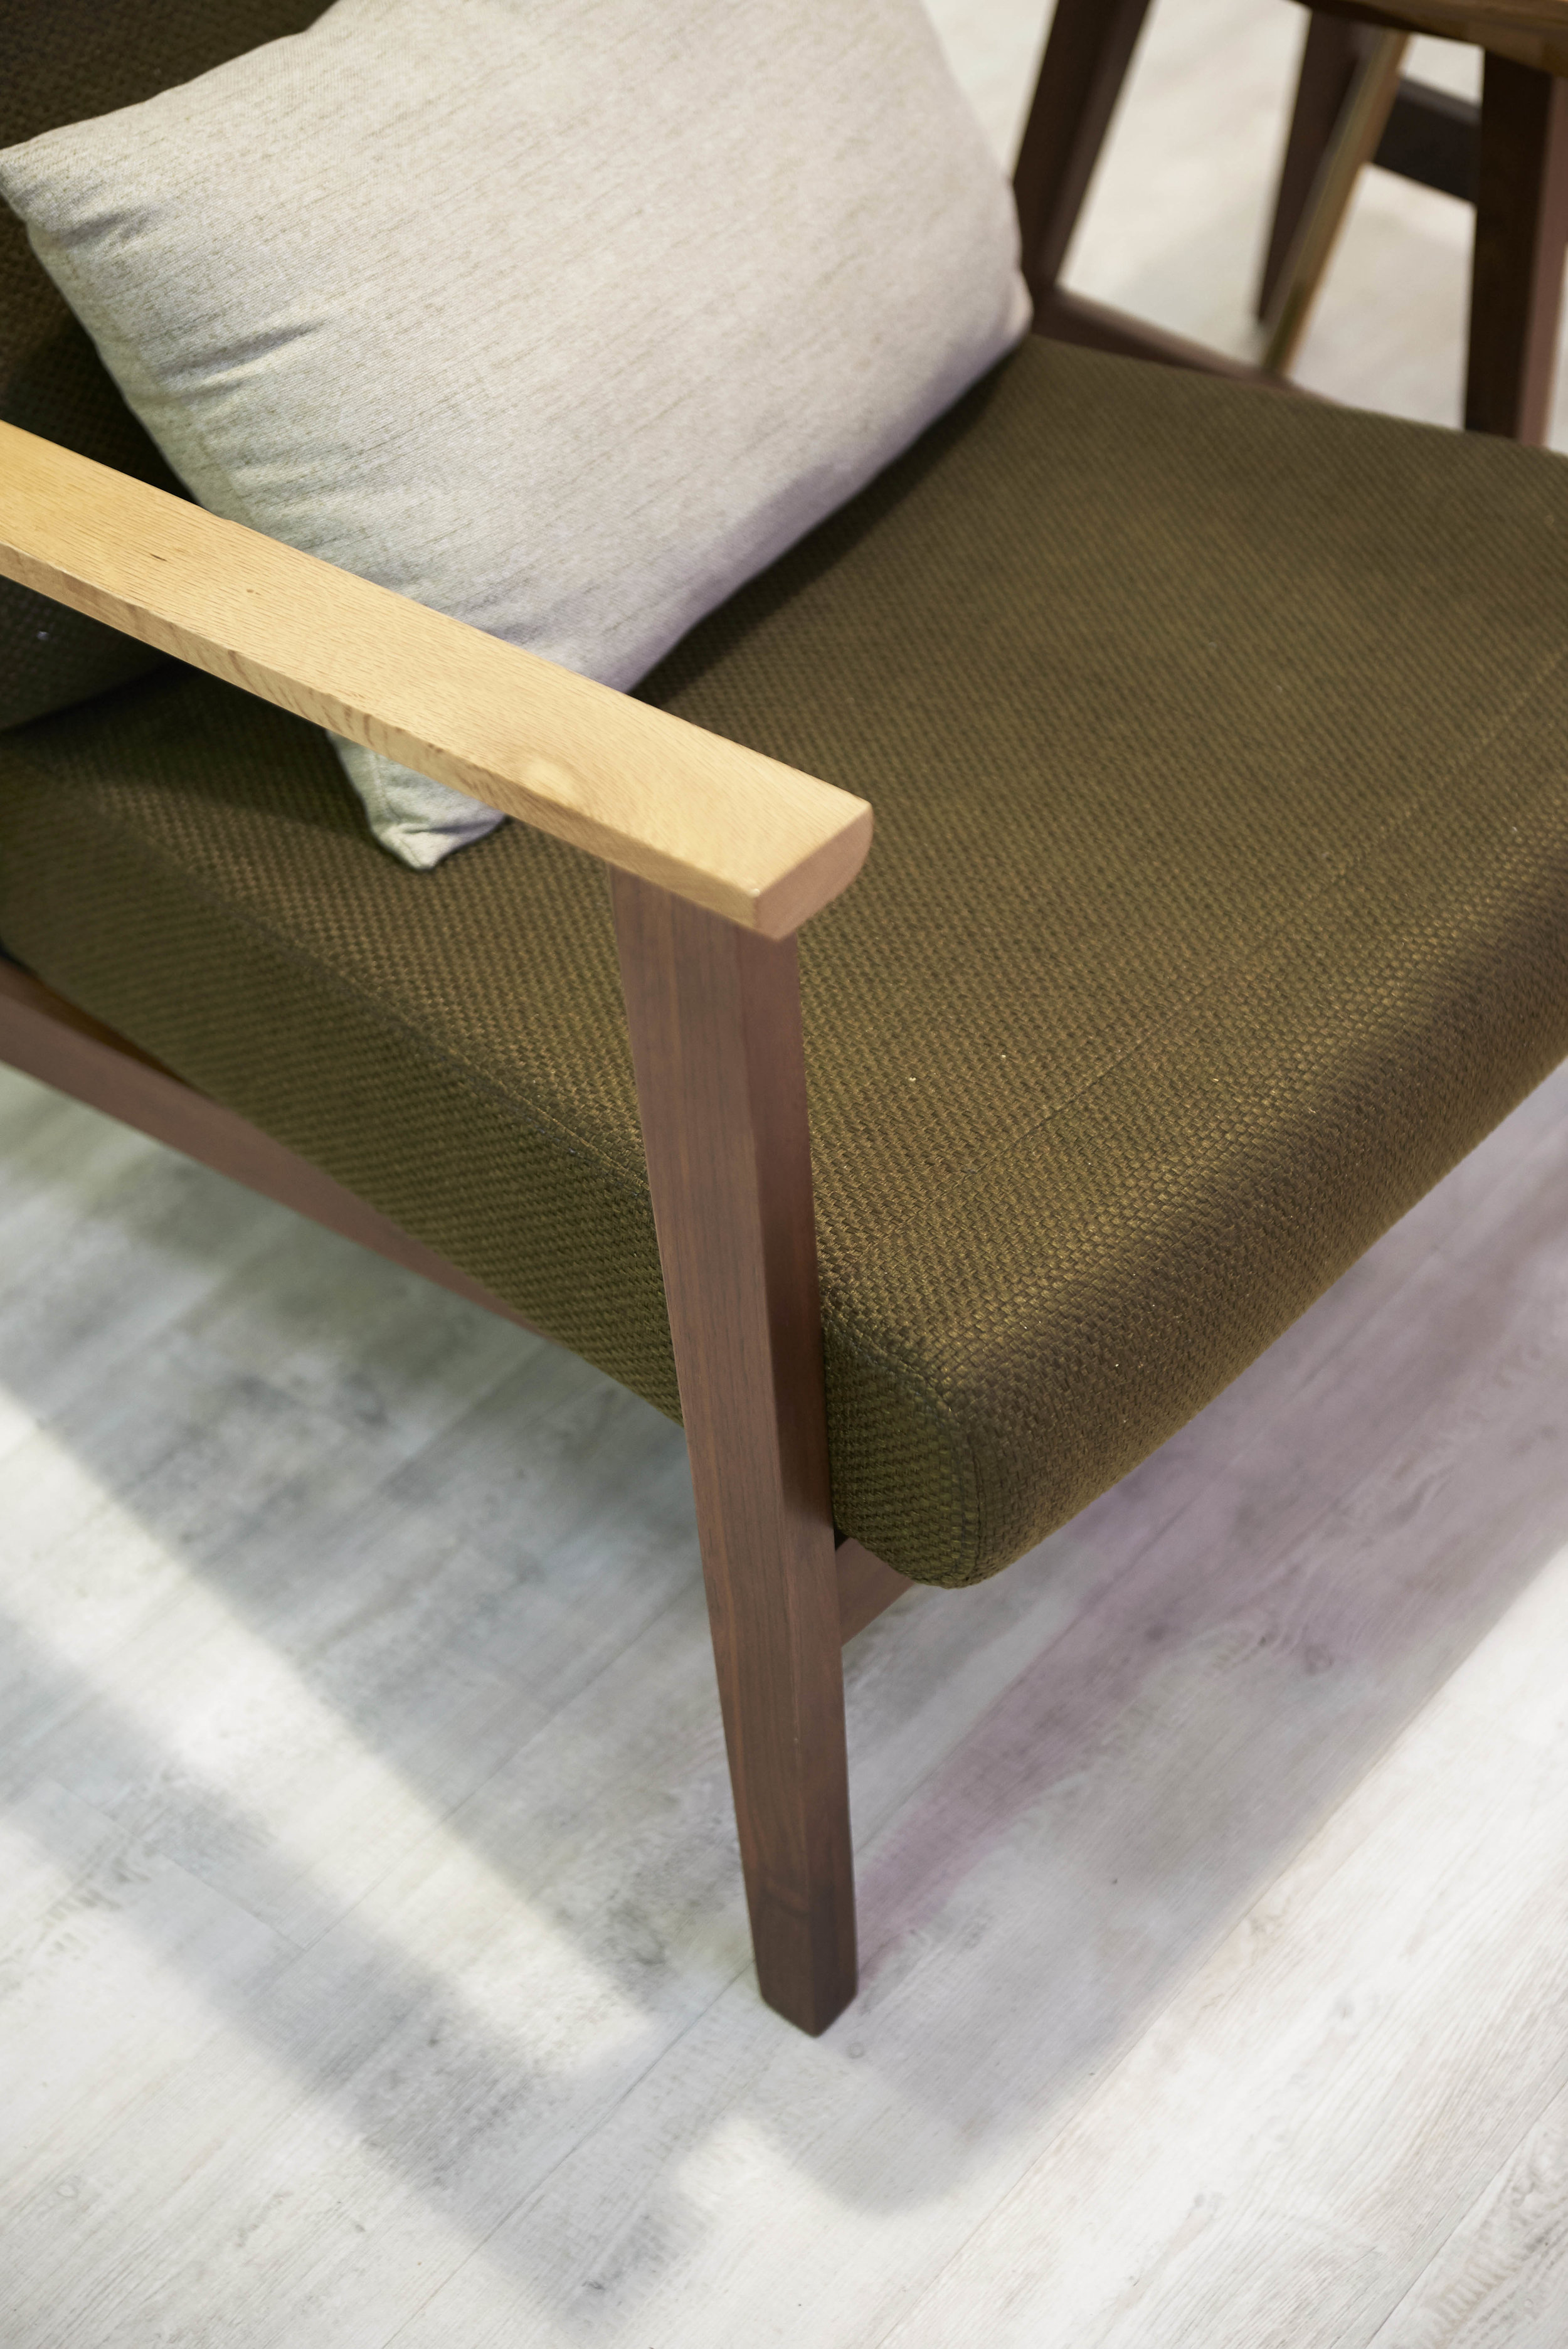 DUALTONE END TABLE & 1-SEATER SOFA FROM  COMMUNE